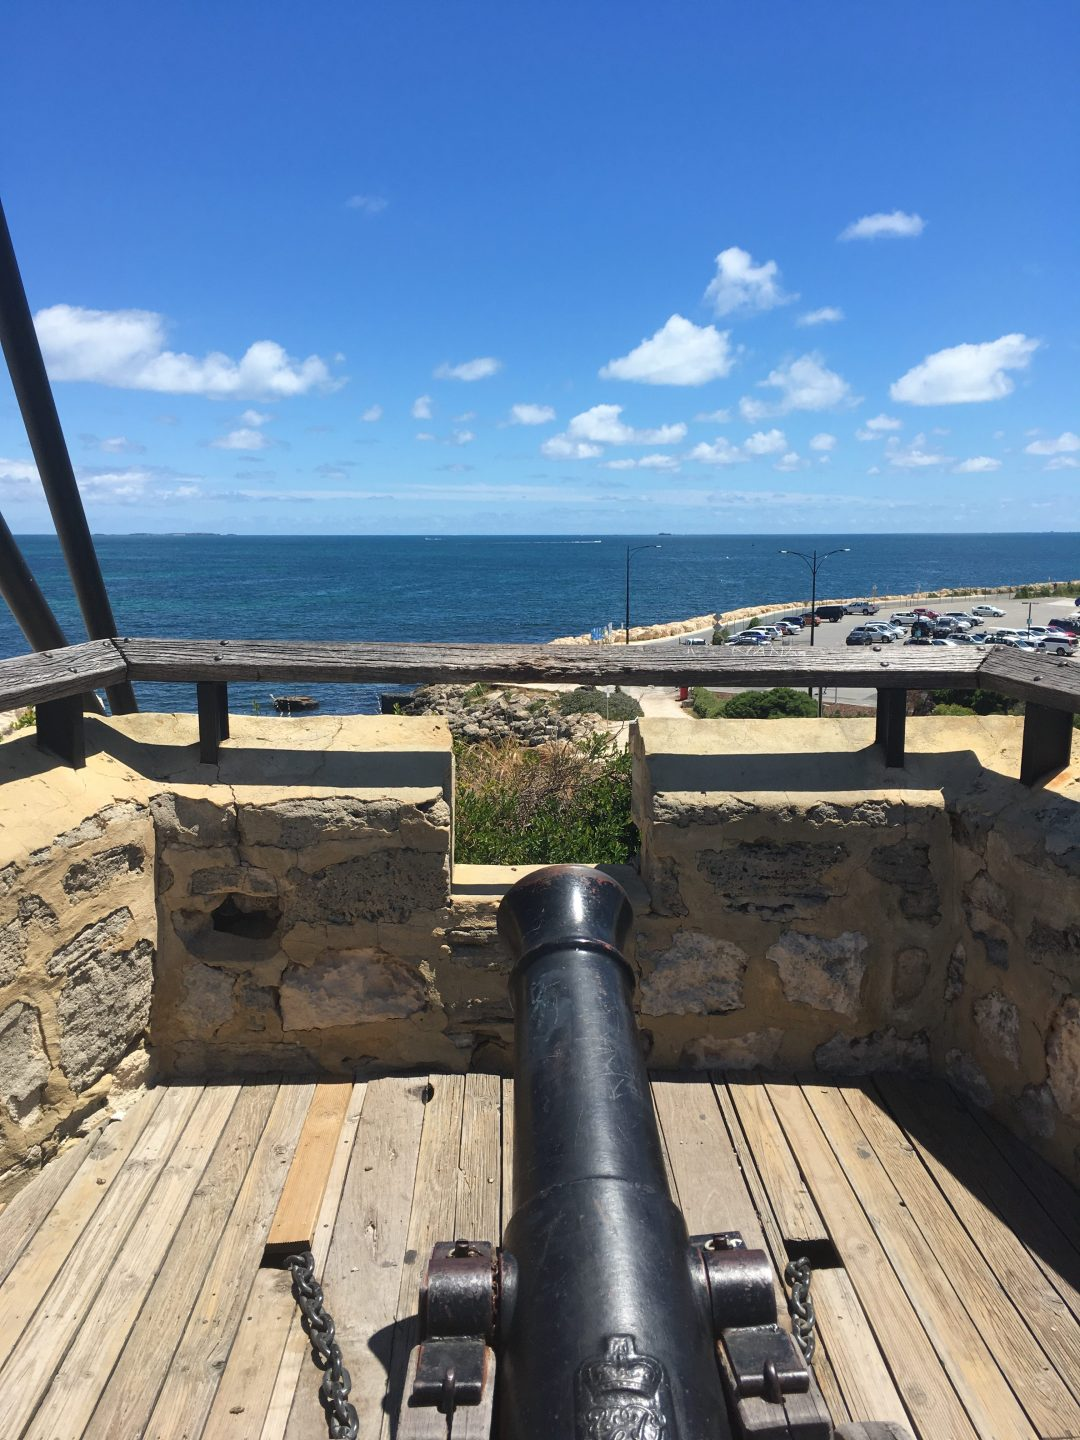 Best things to do in Fremantle - See the cannon fire at the Roundhouse